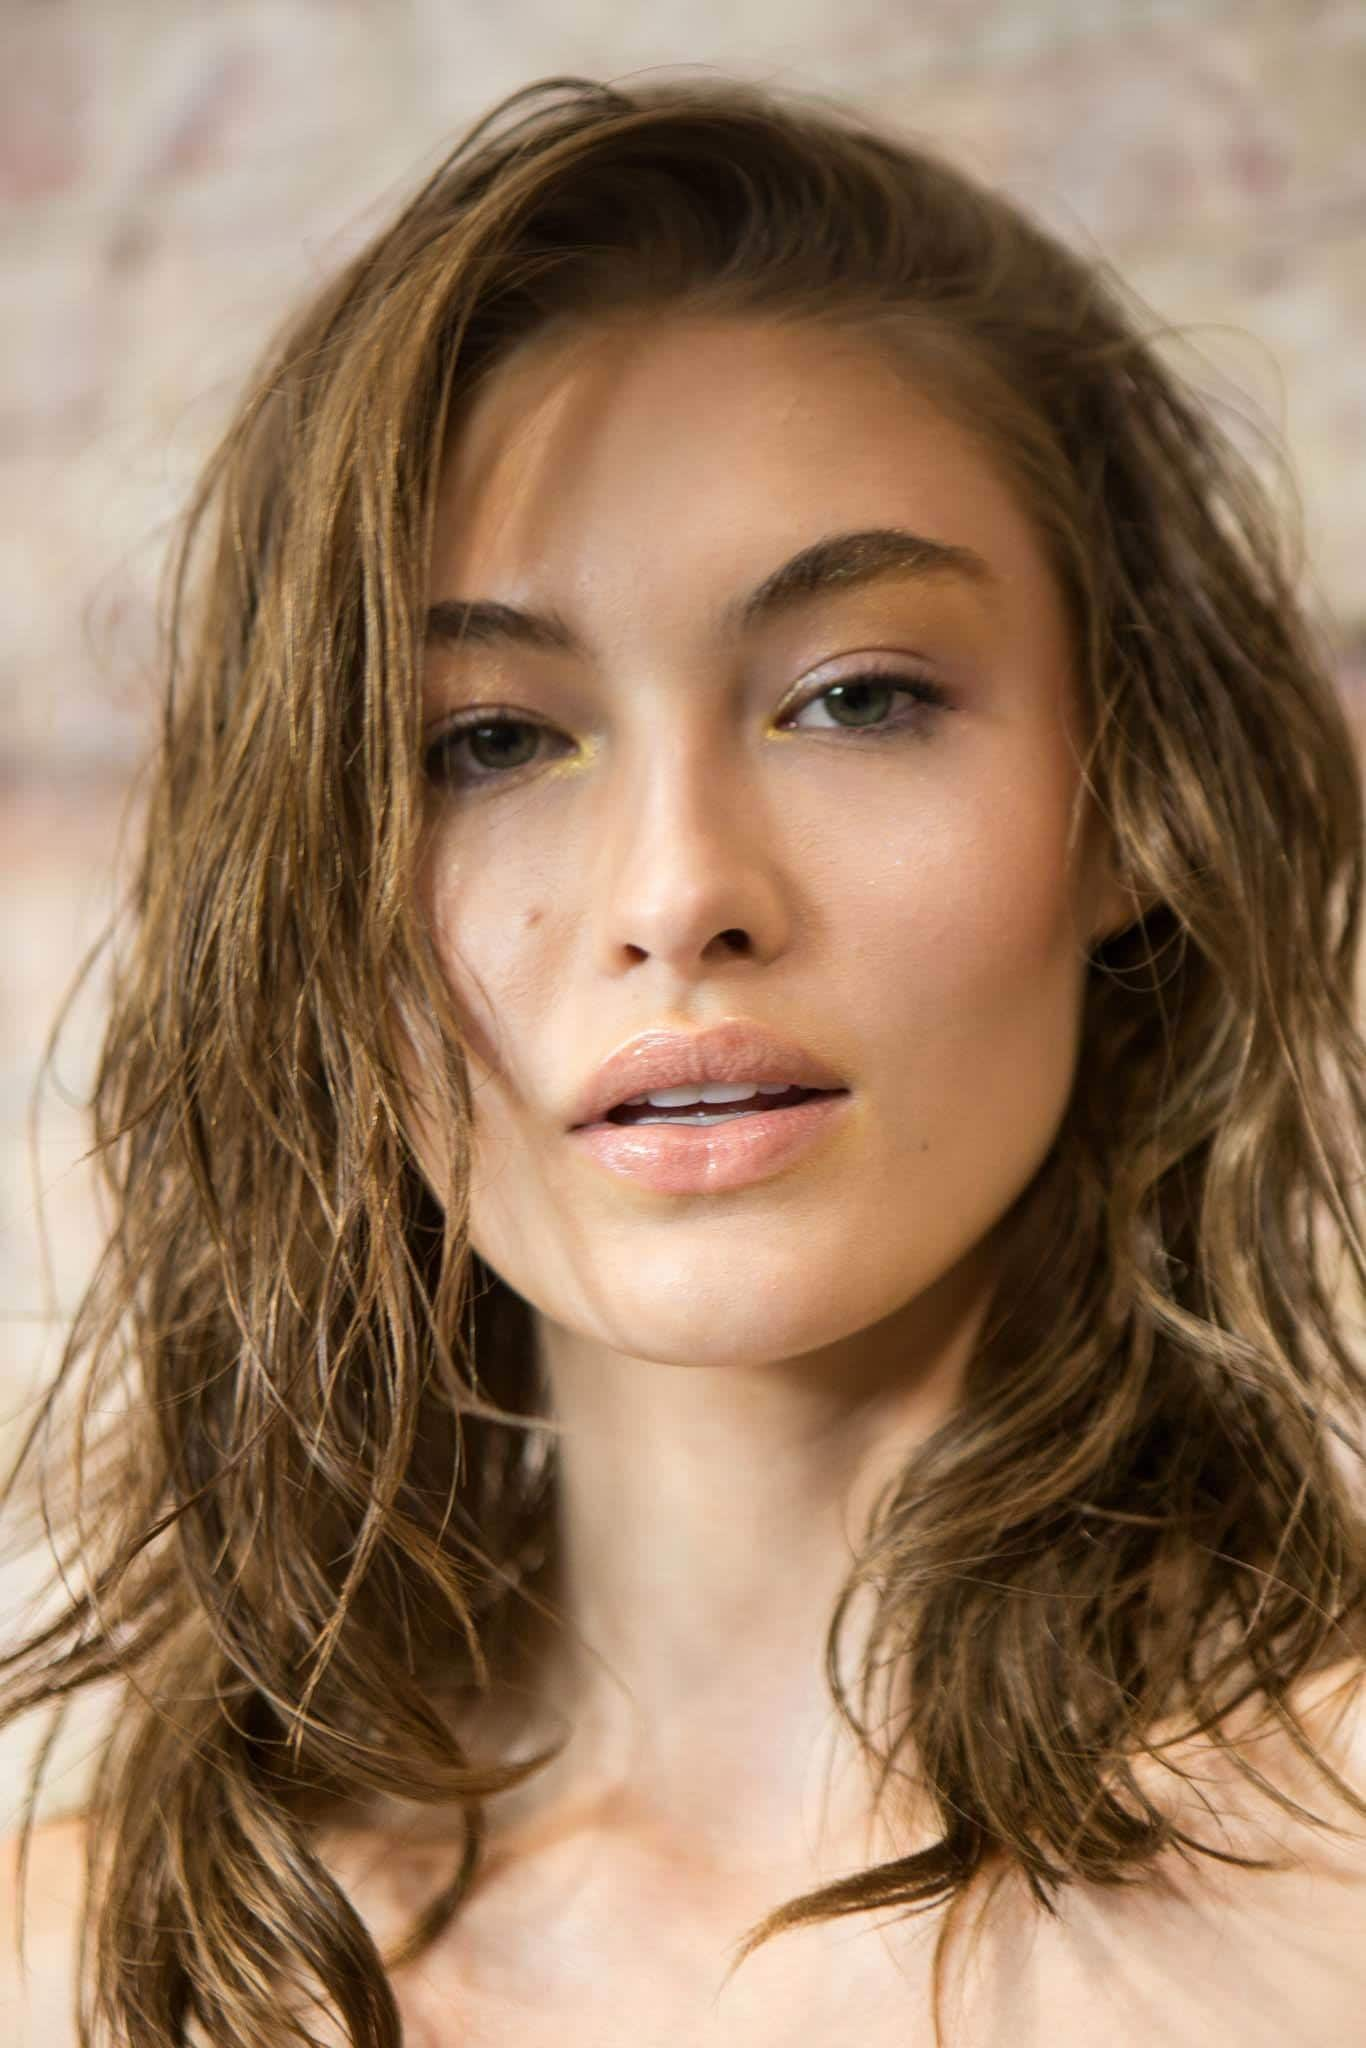 is mousse bad for your hair brunette wet hair